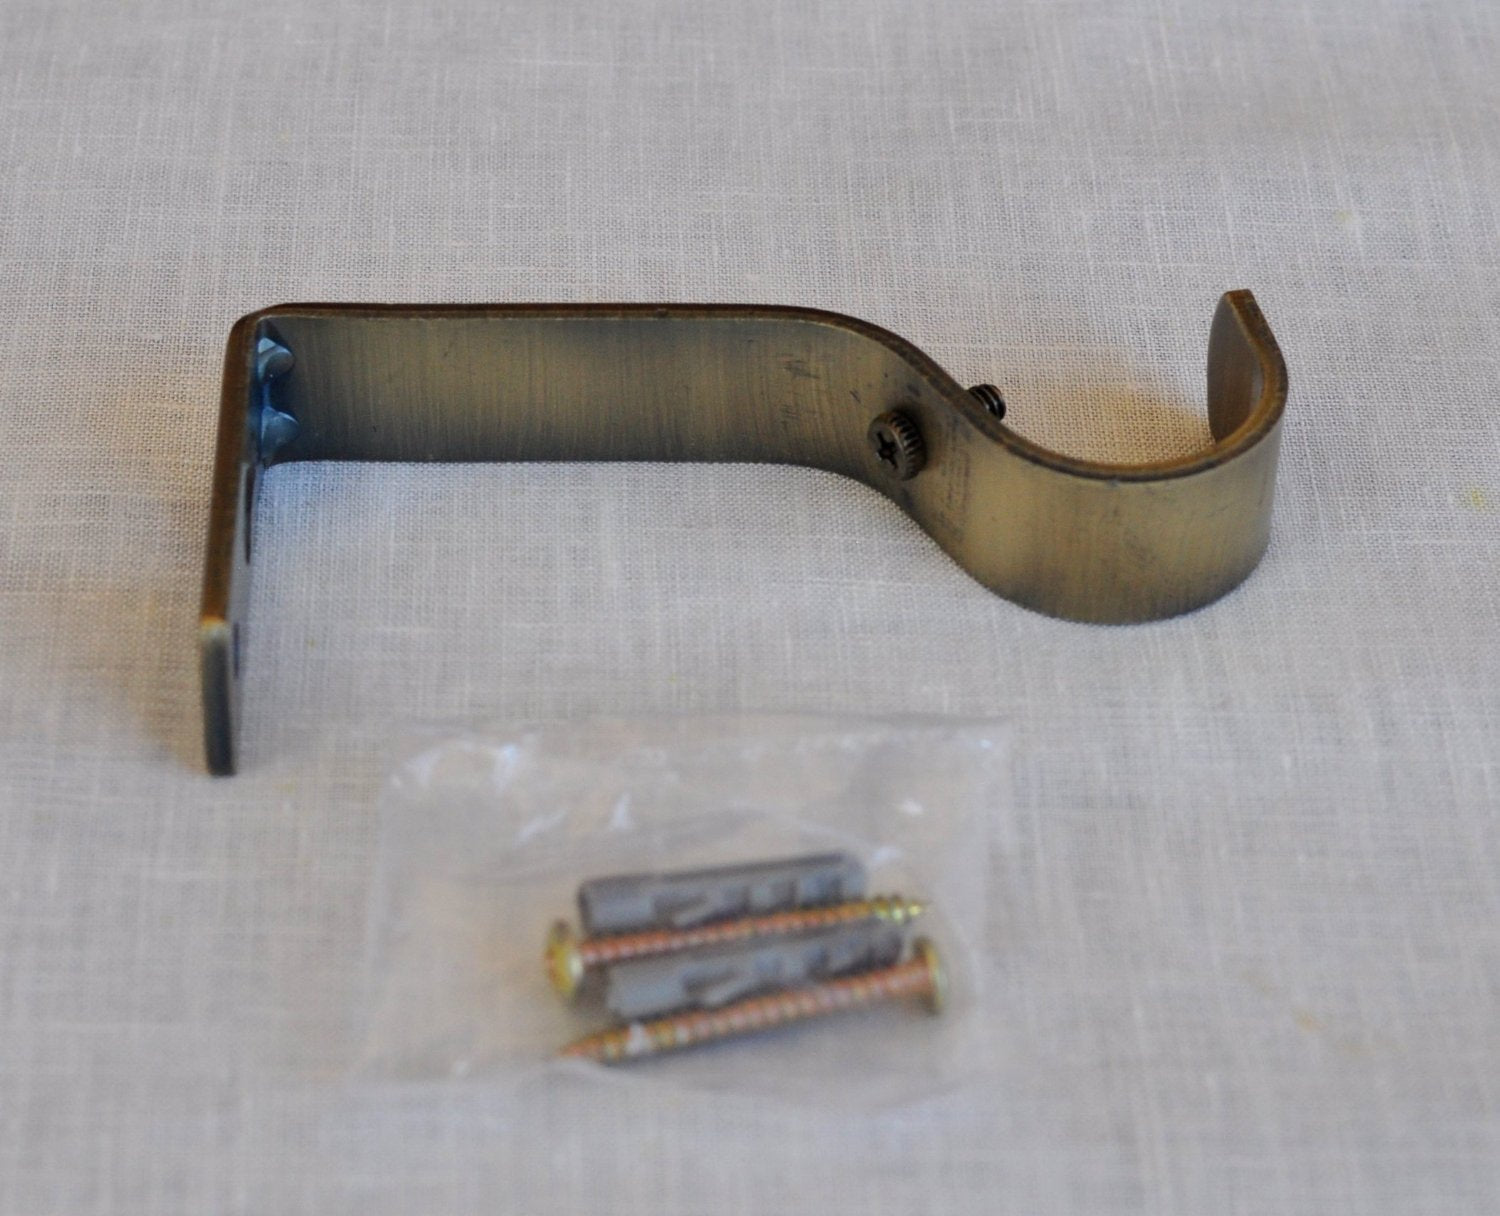 "Curtain Rod Bracket, Non-adjustable, Fits 1 1/8"" Rod - 5 Finishes"